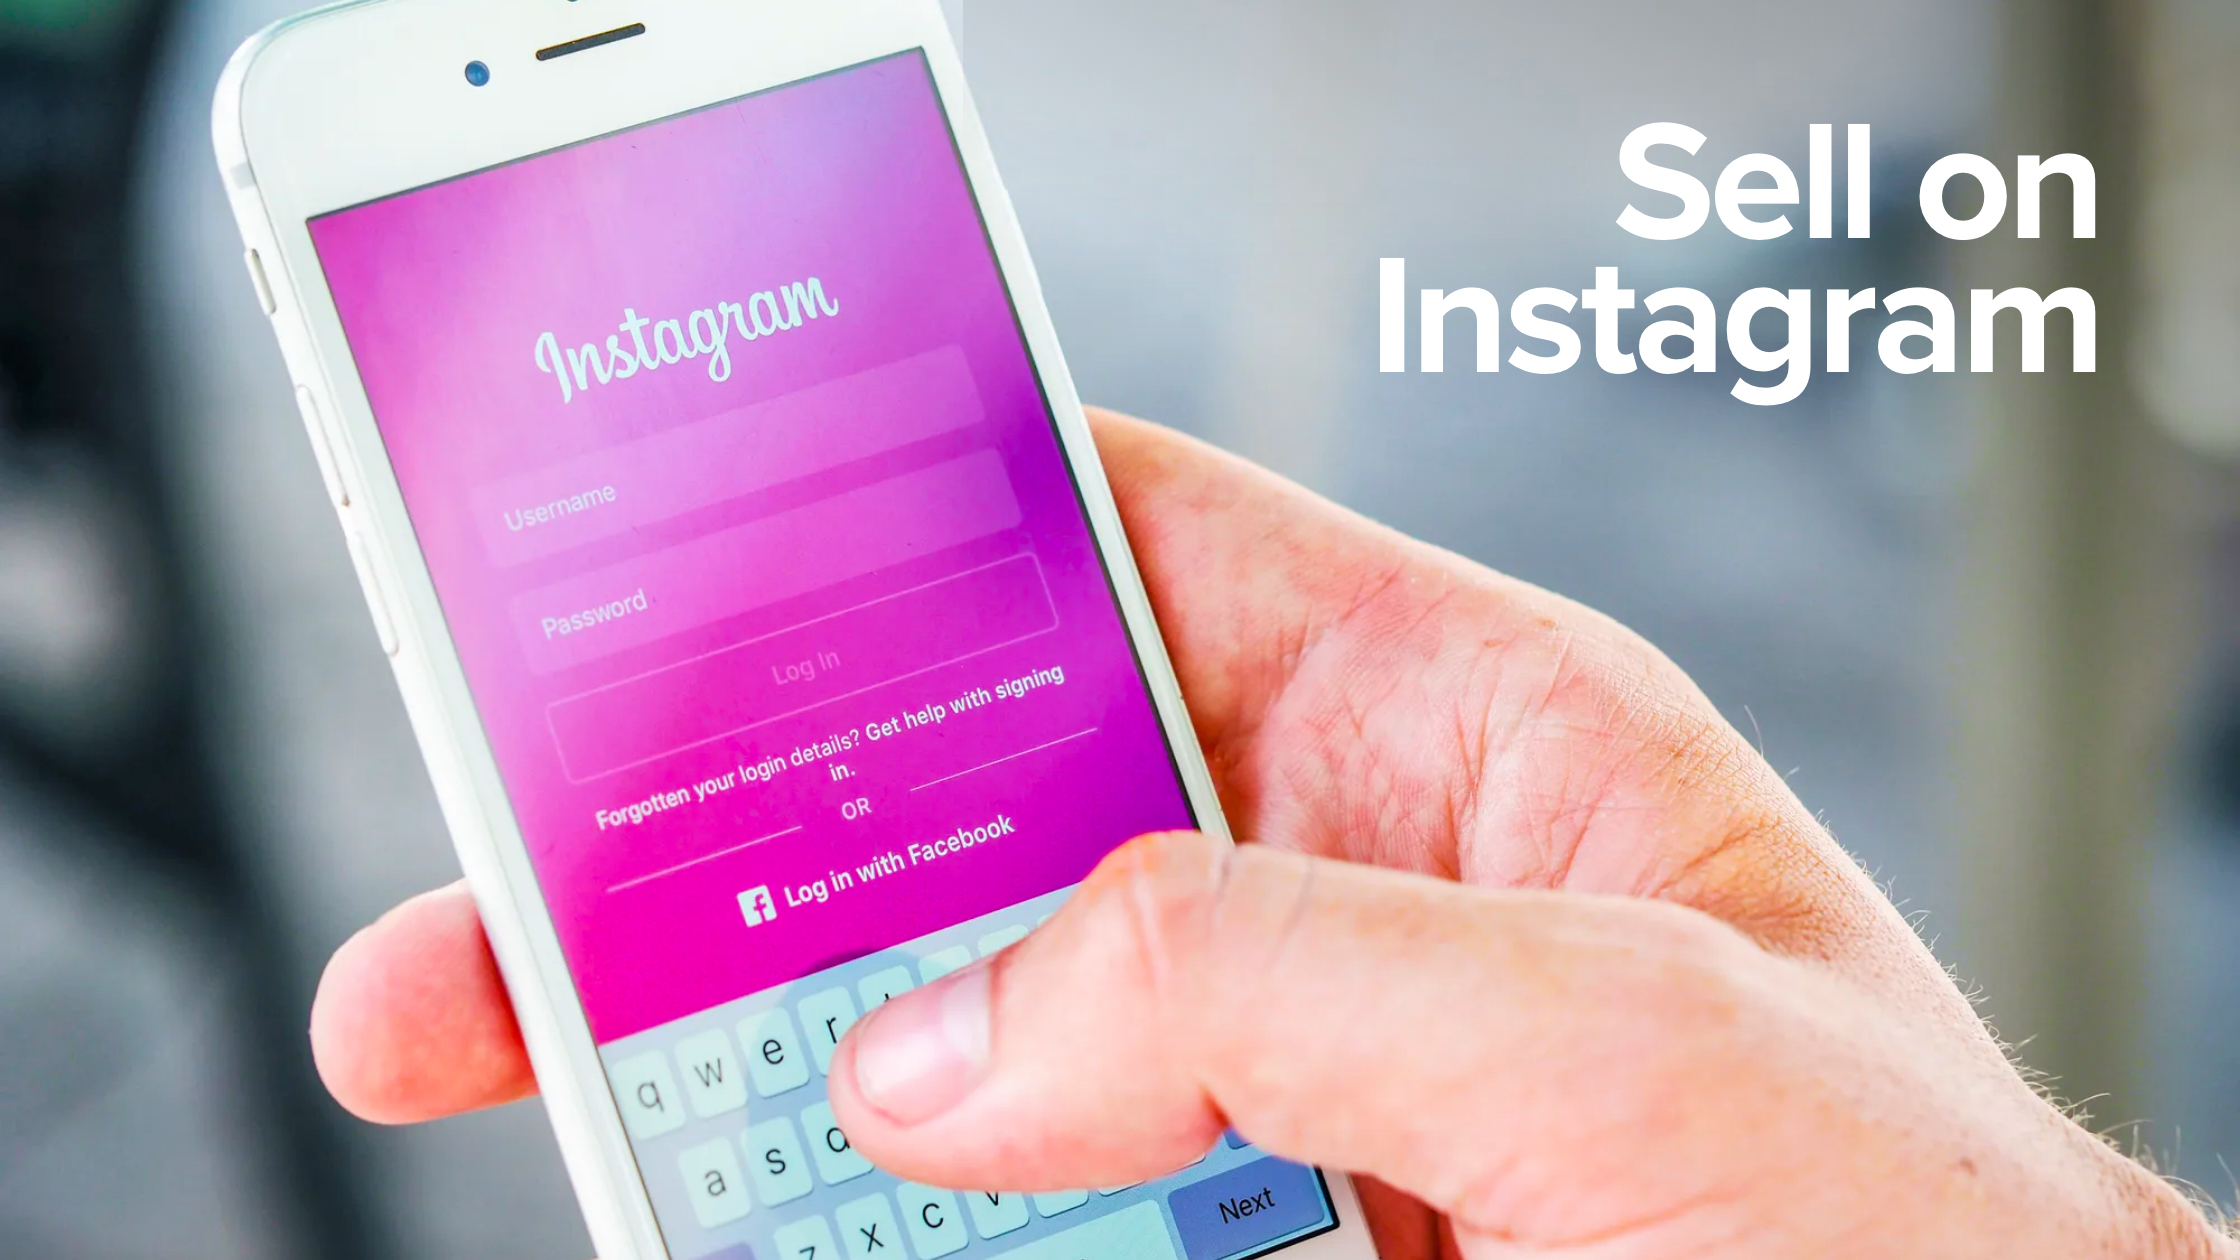 Sell on Instagram: The Ultimate Guide